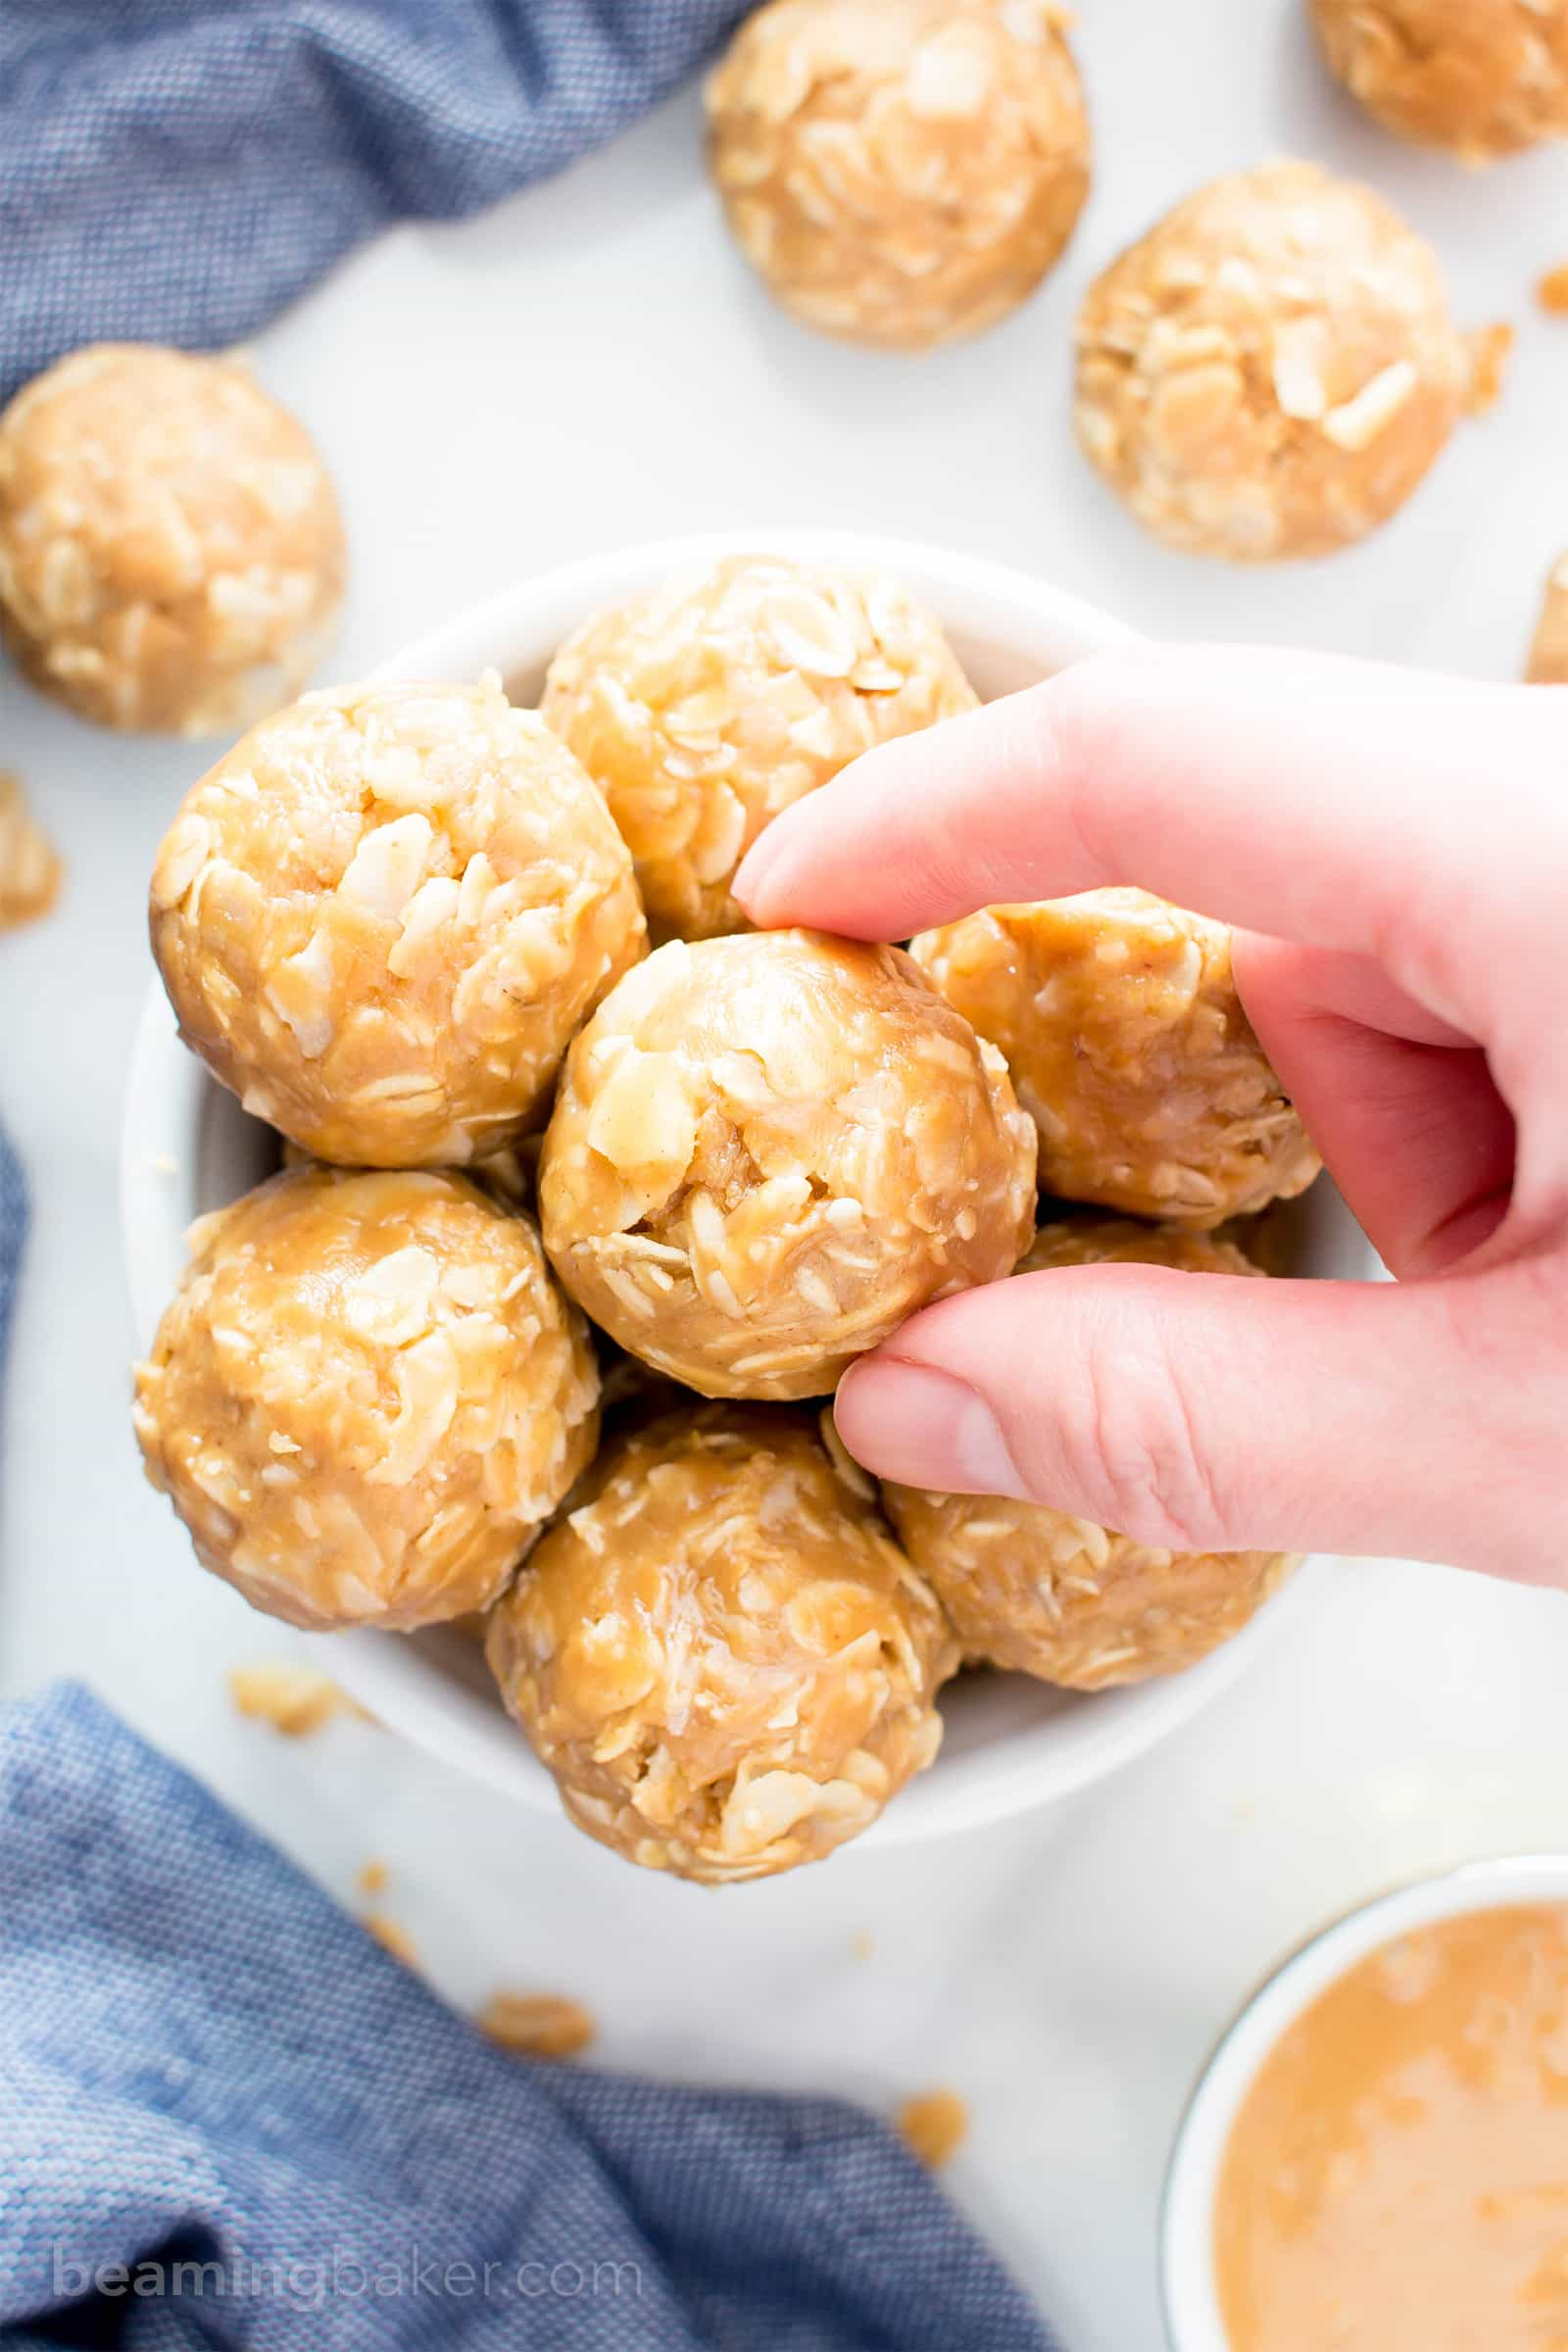 4 Ingredient No Bake Peanut Butter Coconut Energy Bites (V, GF): a quick 'n easy One Bowl recipe for tasty protein-packed energy bites bursting with peanut butter and coconut! #Vegan #ProteinRich #GlutenFree #DairyFree #WholeGrain   BeamingBaker.com